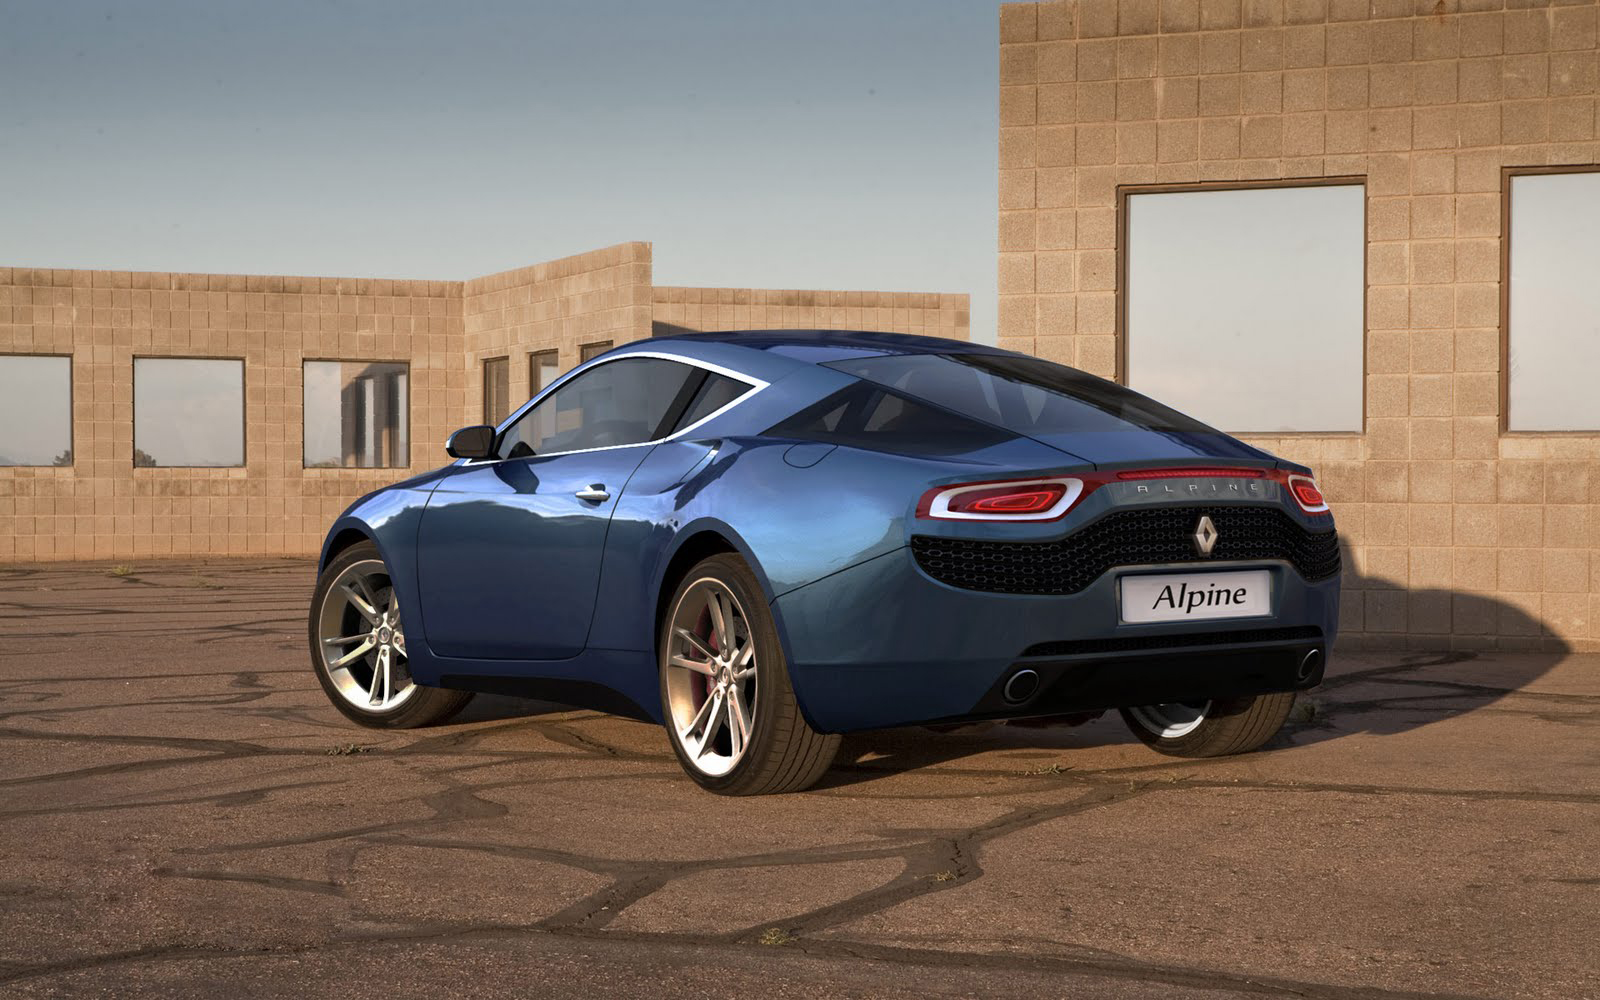 2012 Renault Alpine Renault Alpine Sports Coupe with Exciting Features